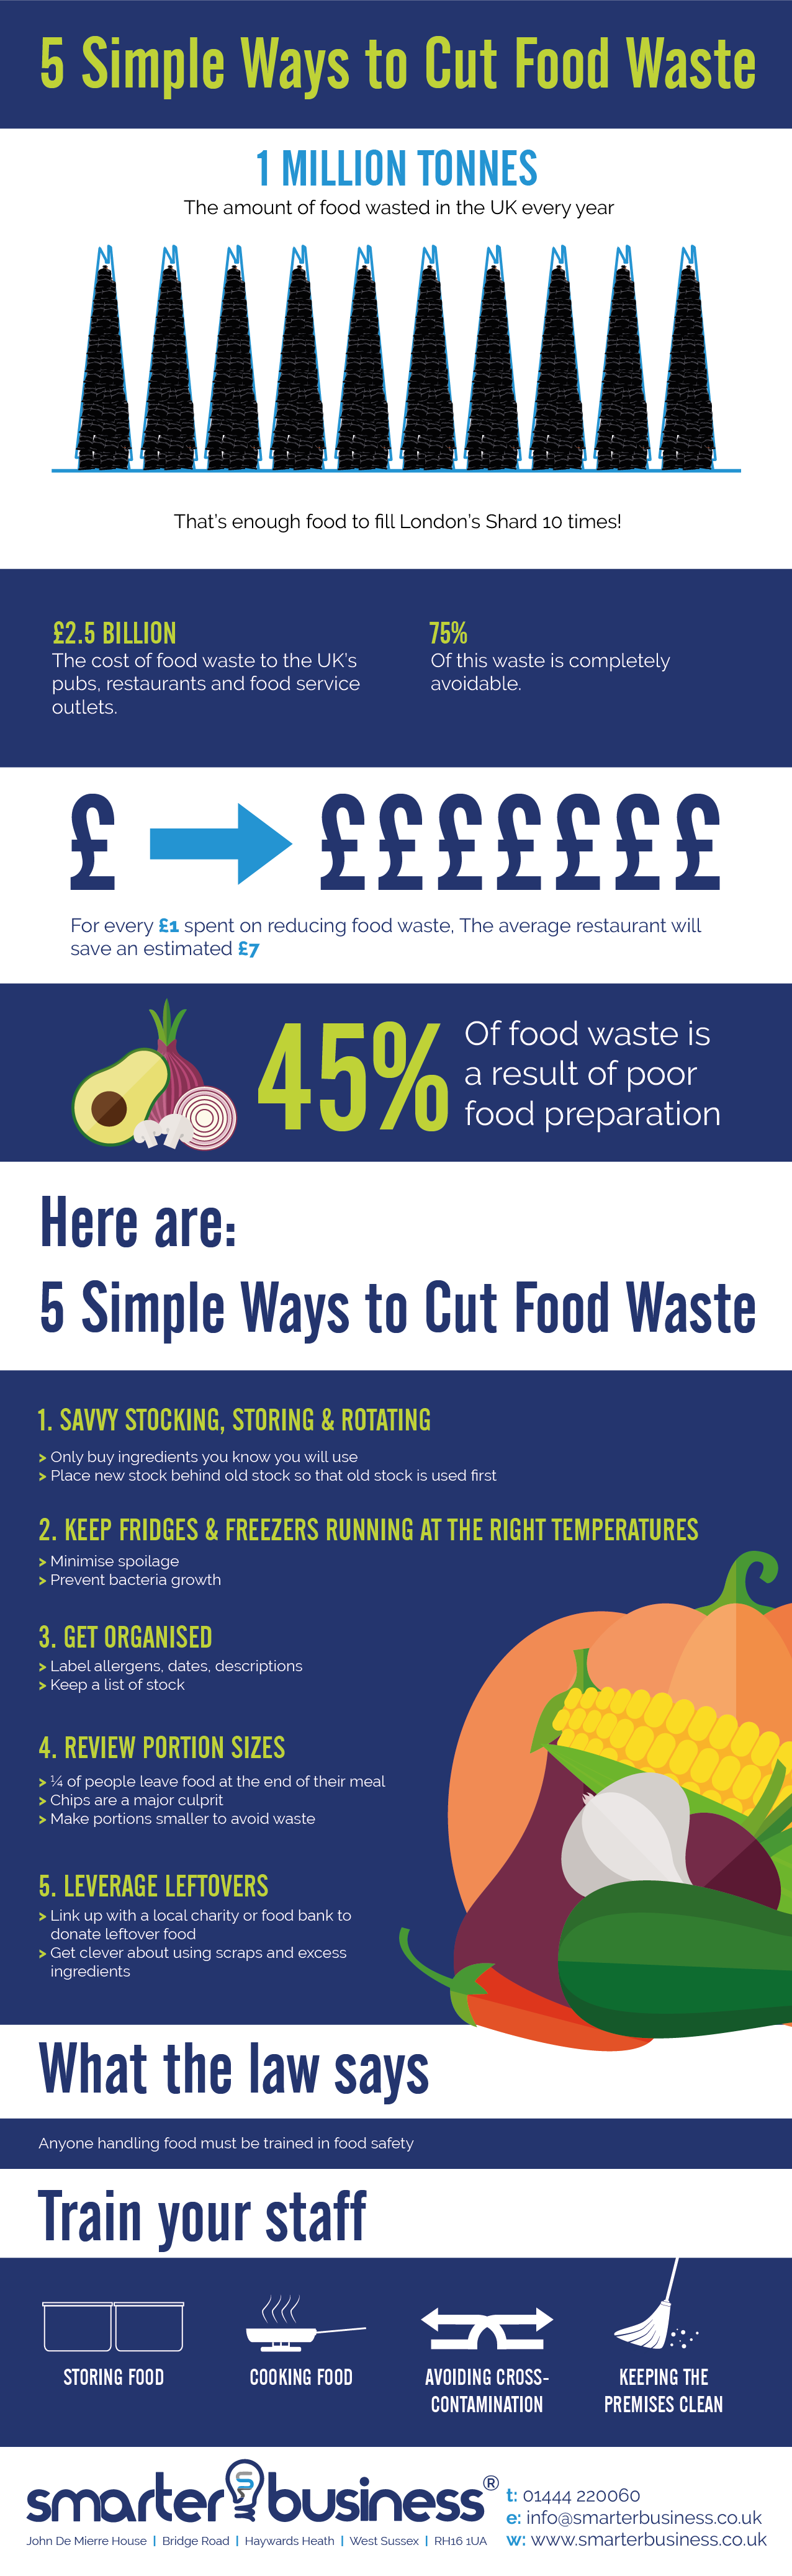 food waste recycling infographic